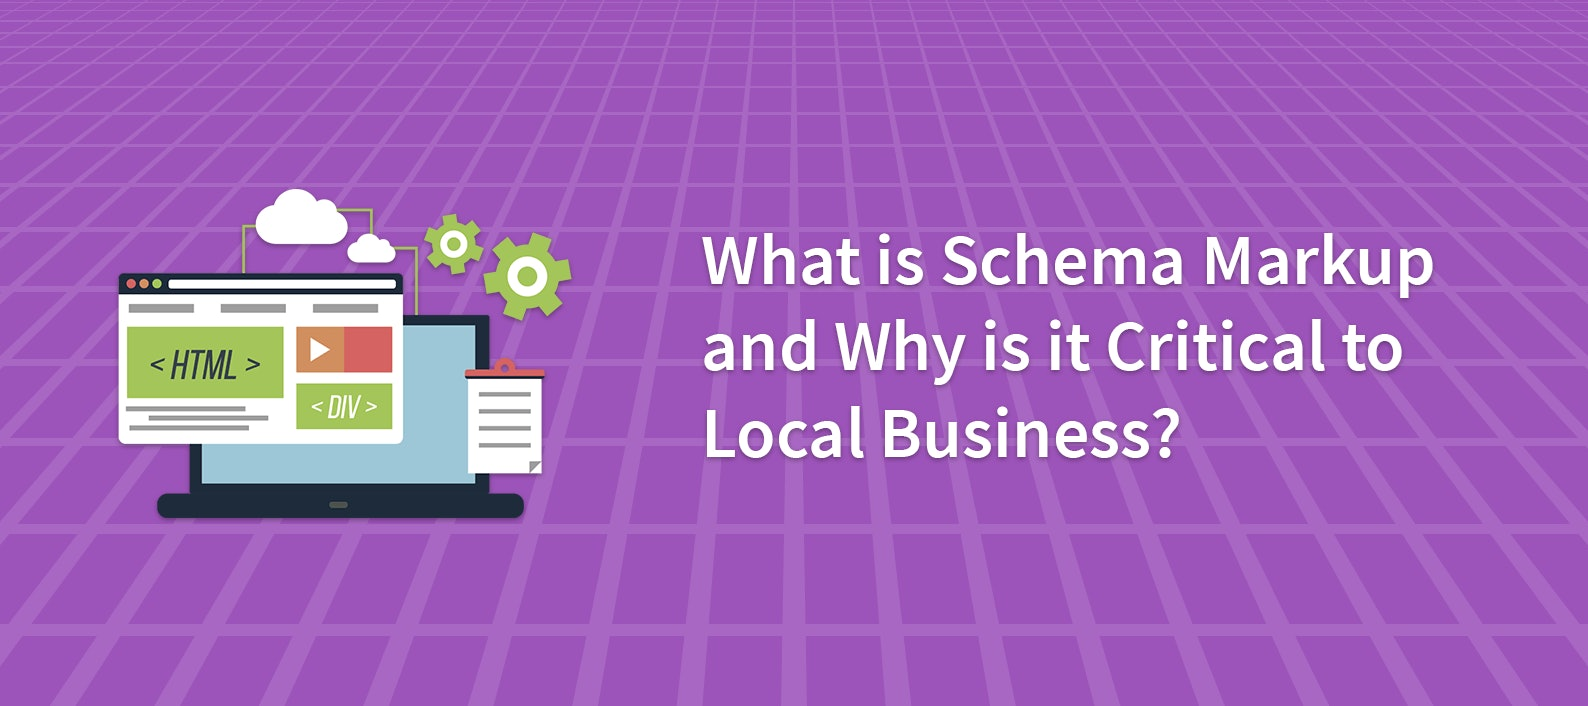 What Is Schema Markup and Why Is It Critical to Local Business?